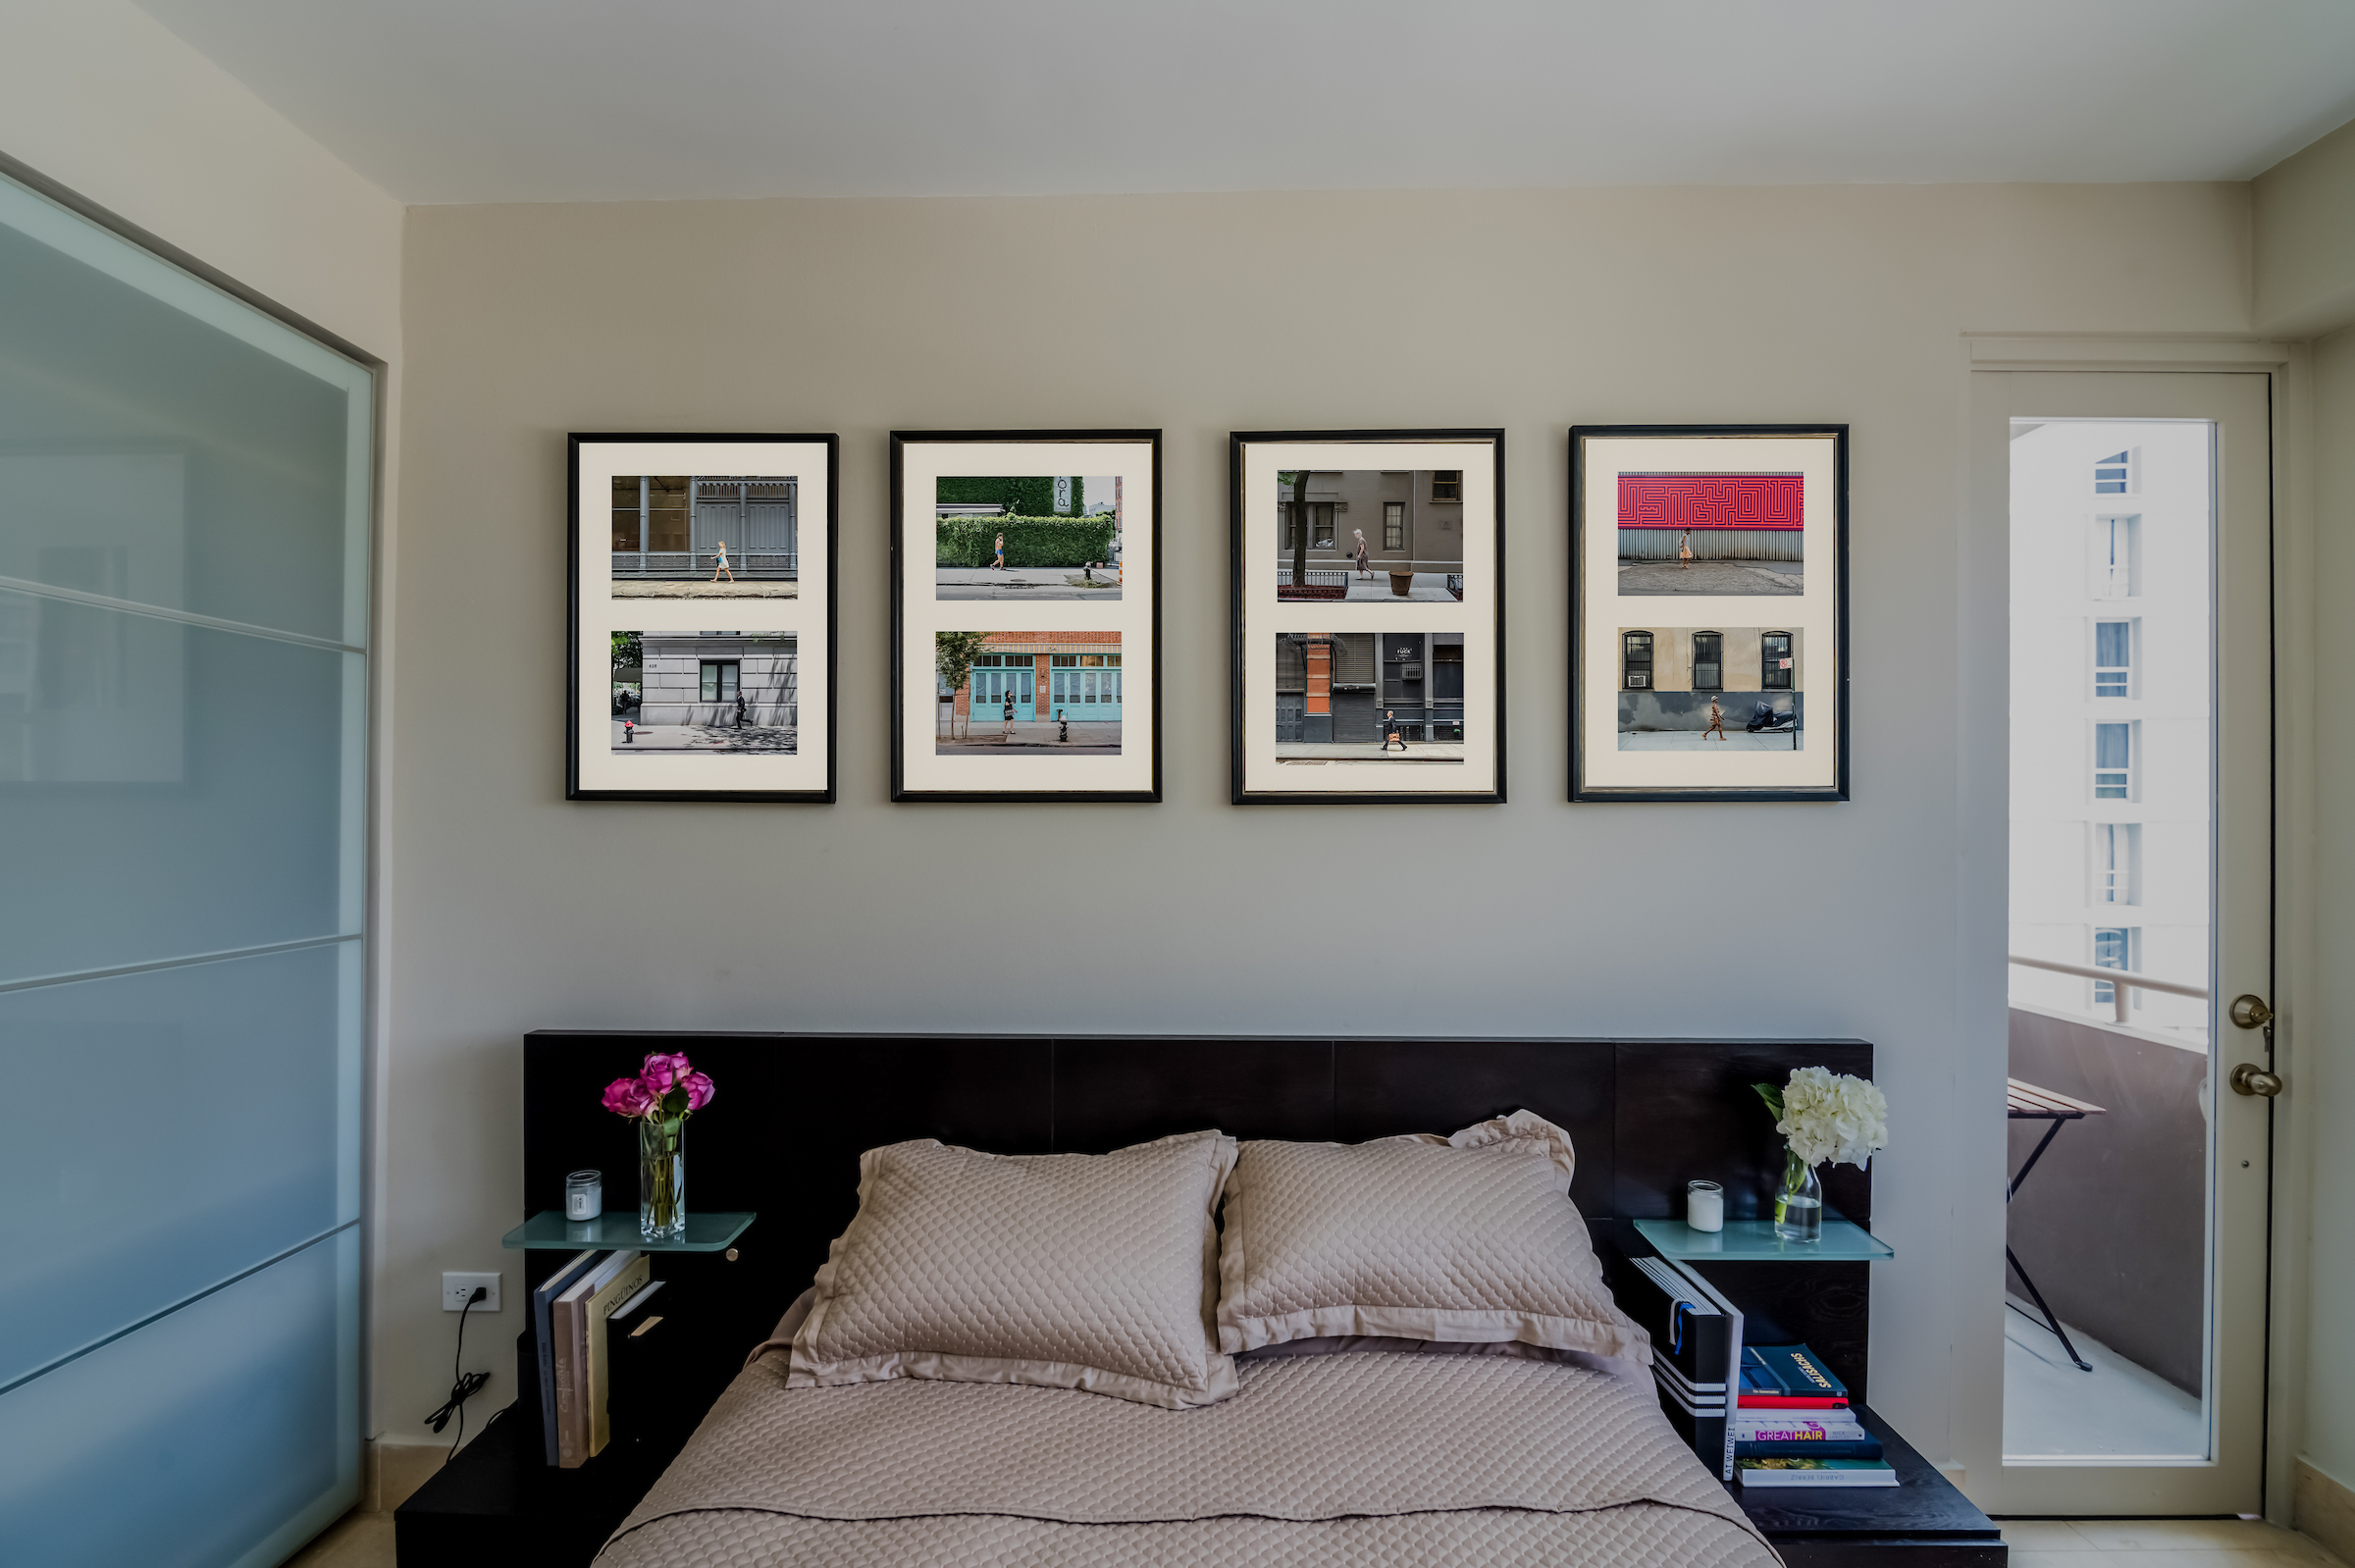 8 12x18 inches on 4 vertical frames at Luis guest room-.jpg